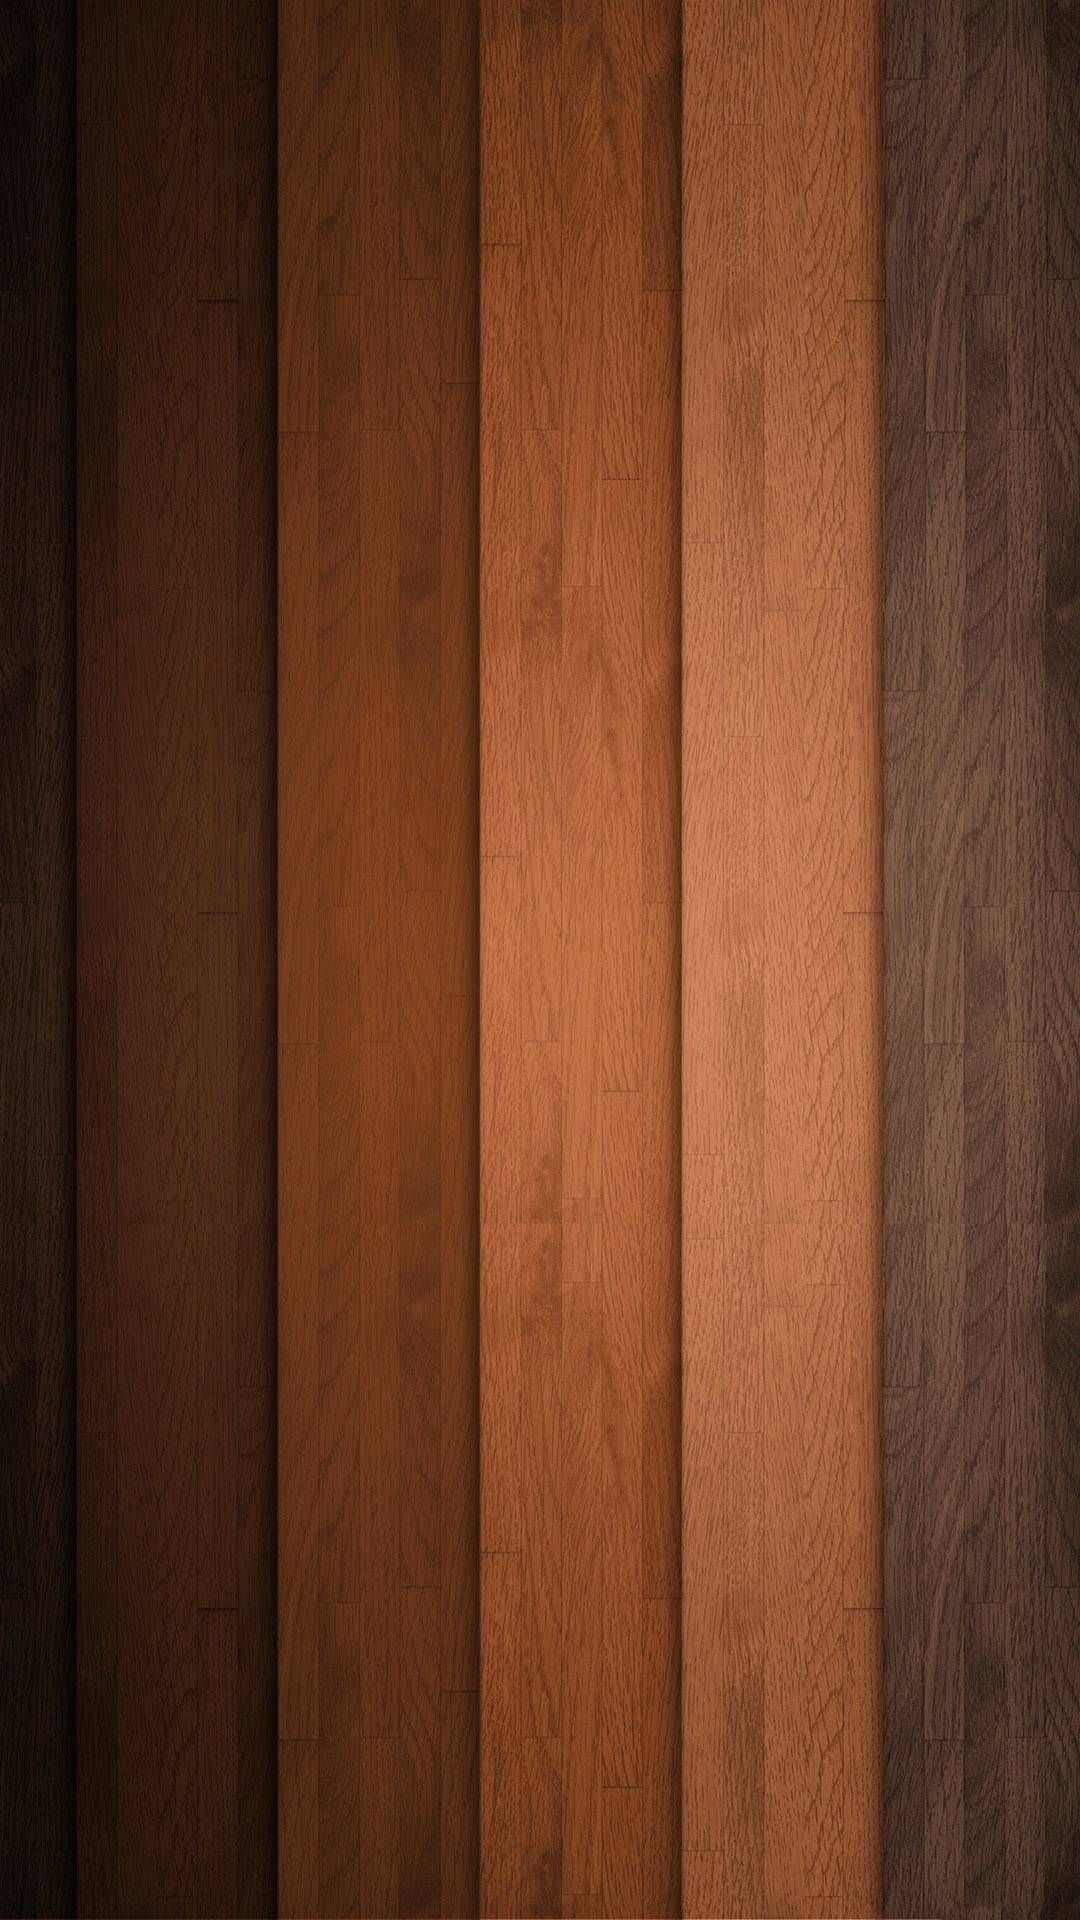 Httpmobworg16684Wood Wallpaper Android